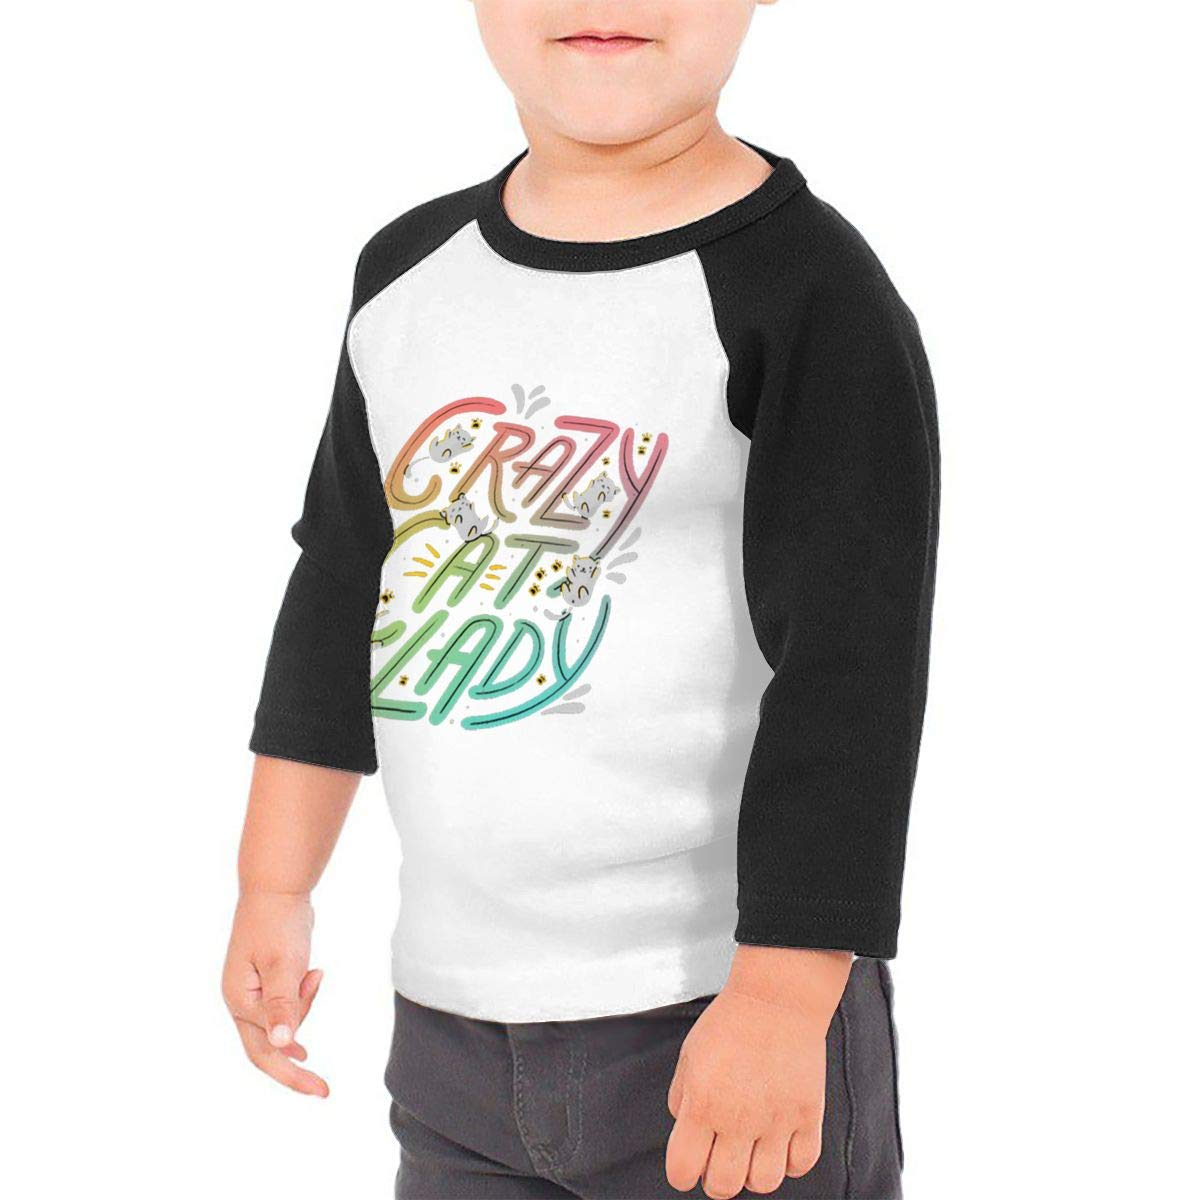 Crazy Cat Lady Unisex Toddler Baseball Jersey Contrast 3//4 Sleeves Tee